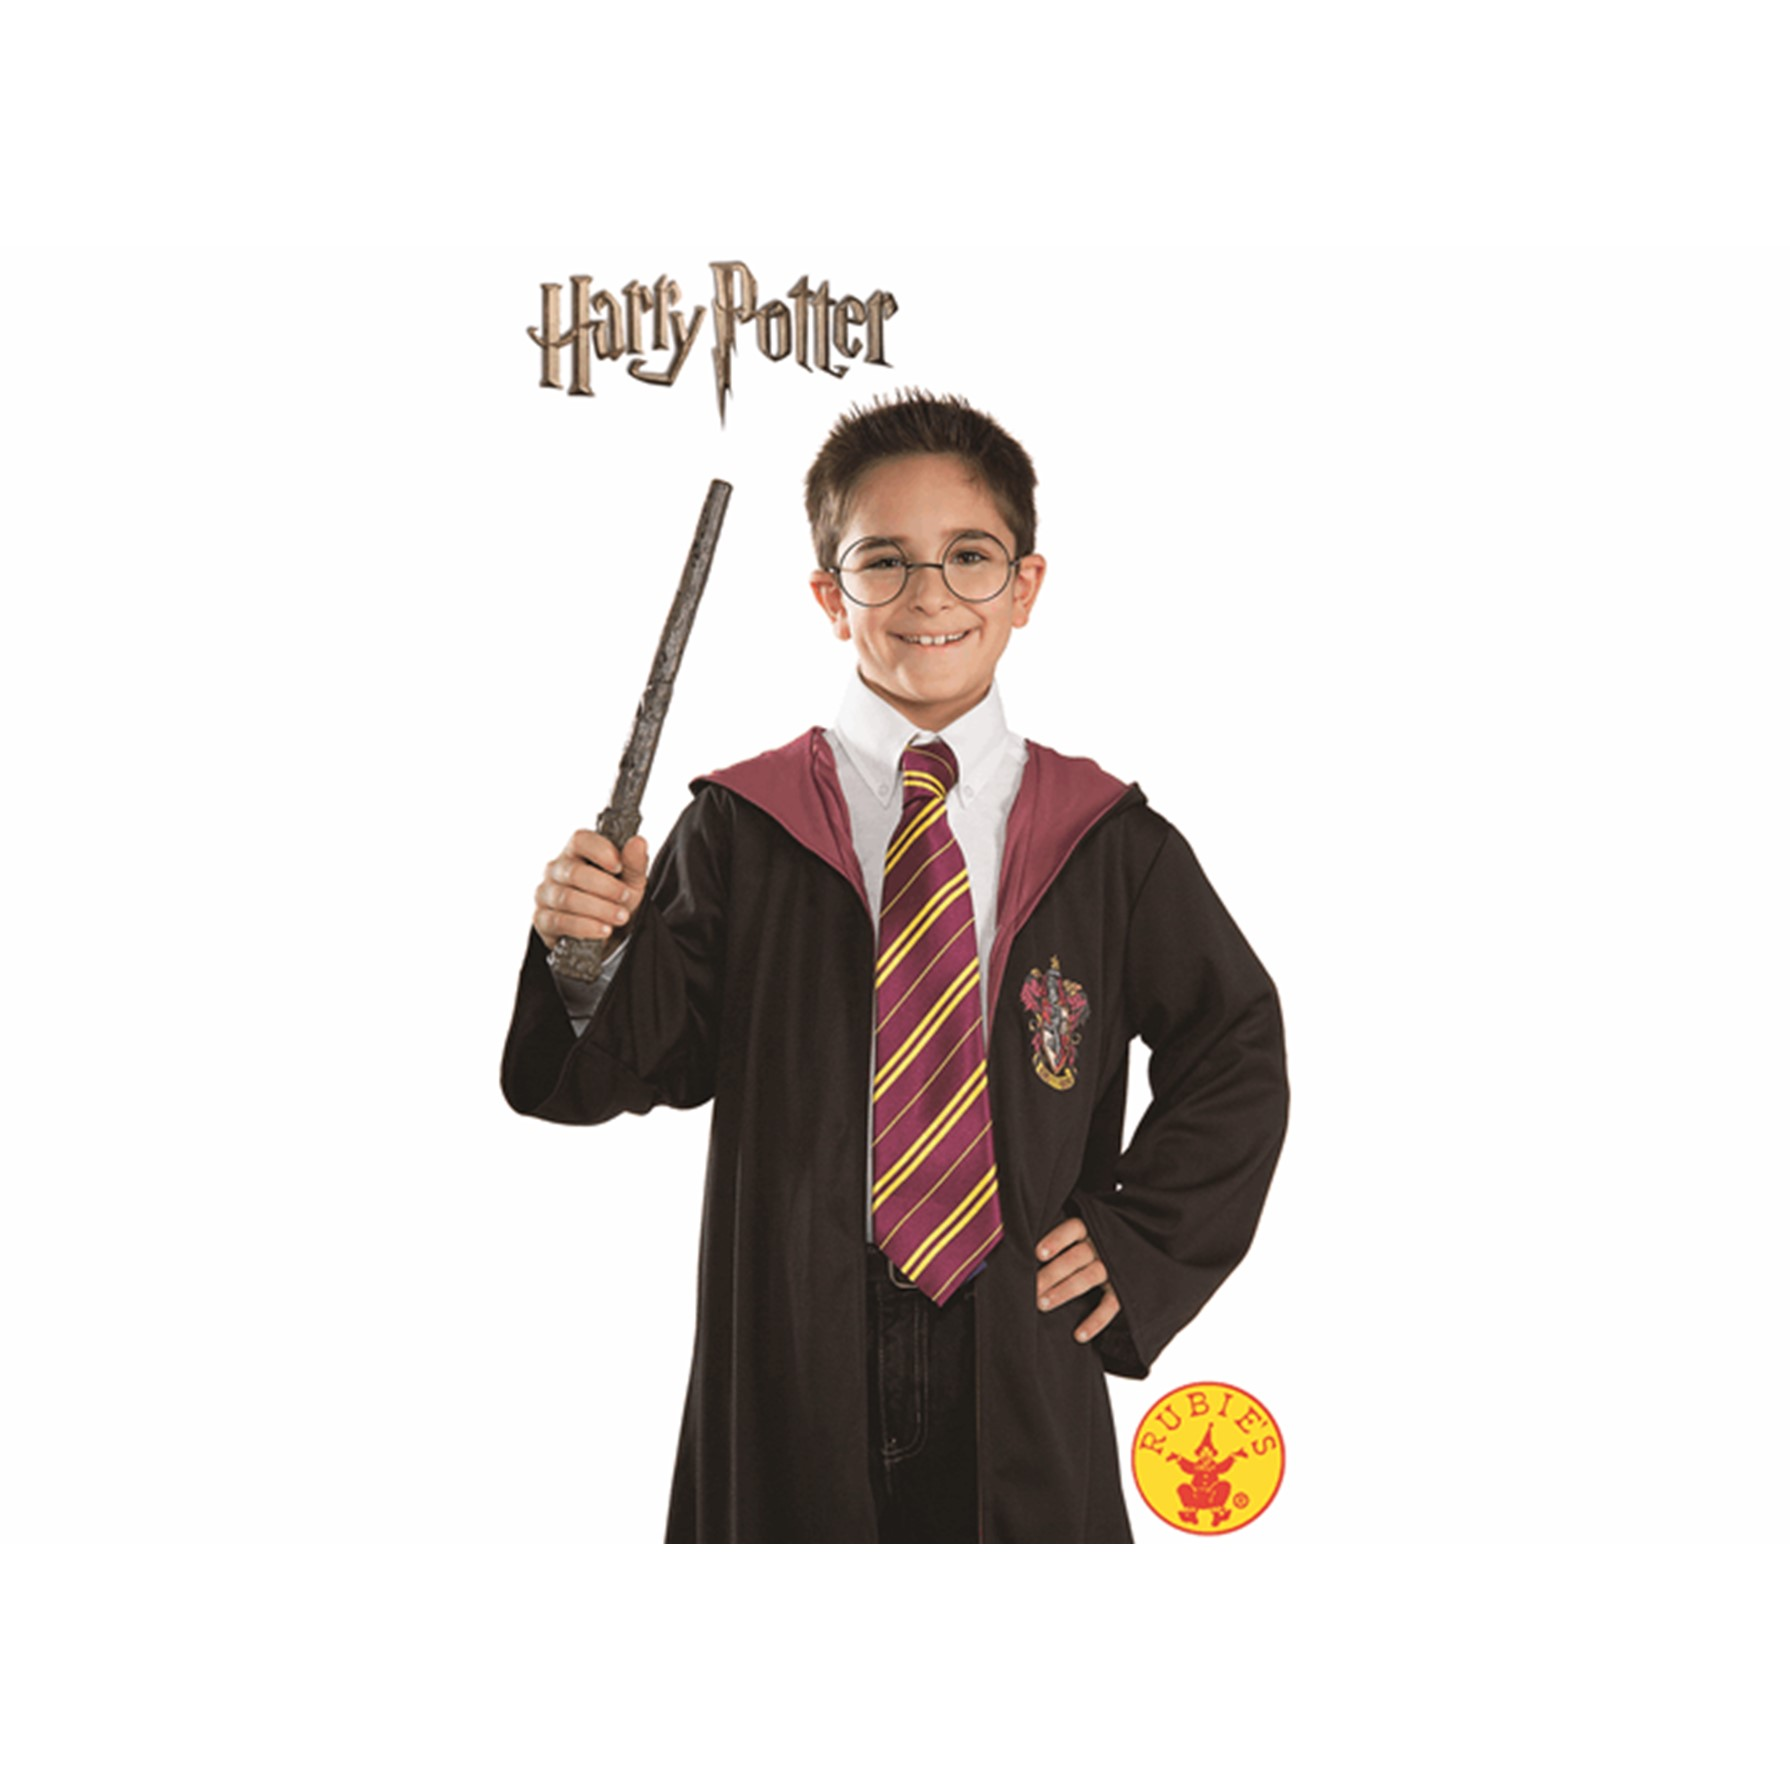 Harry Potter Corbata Infantil